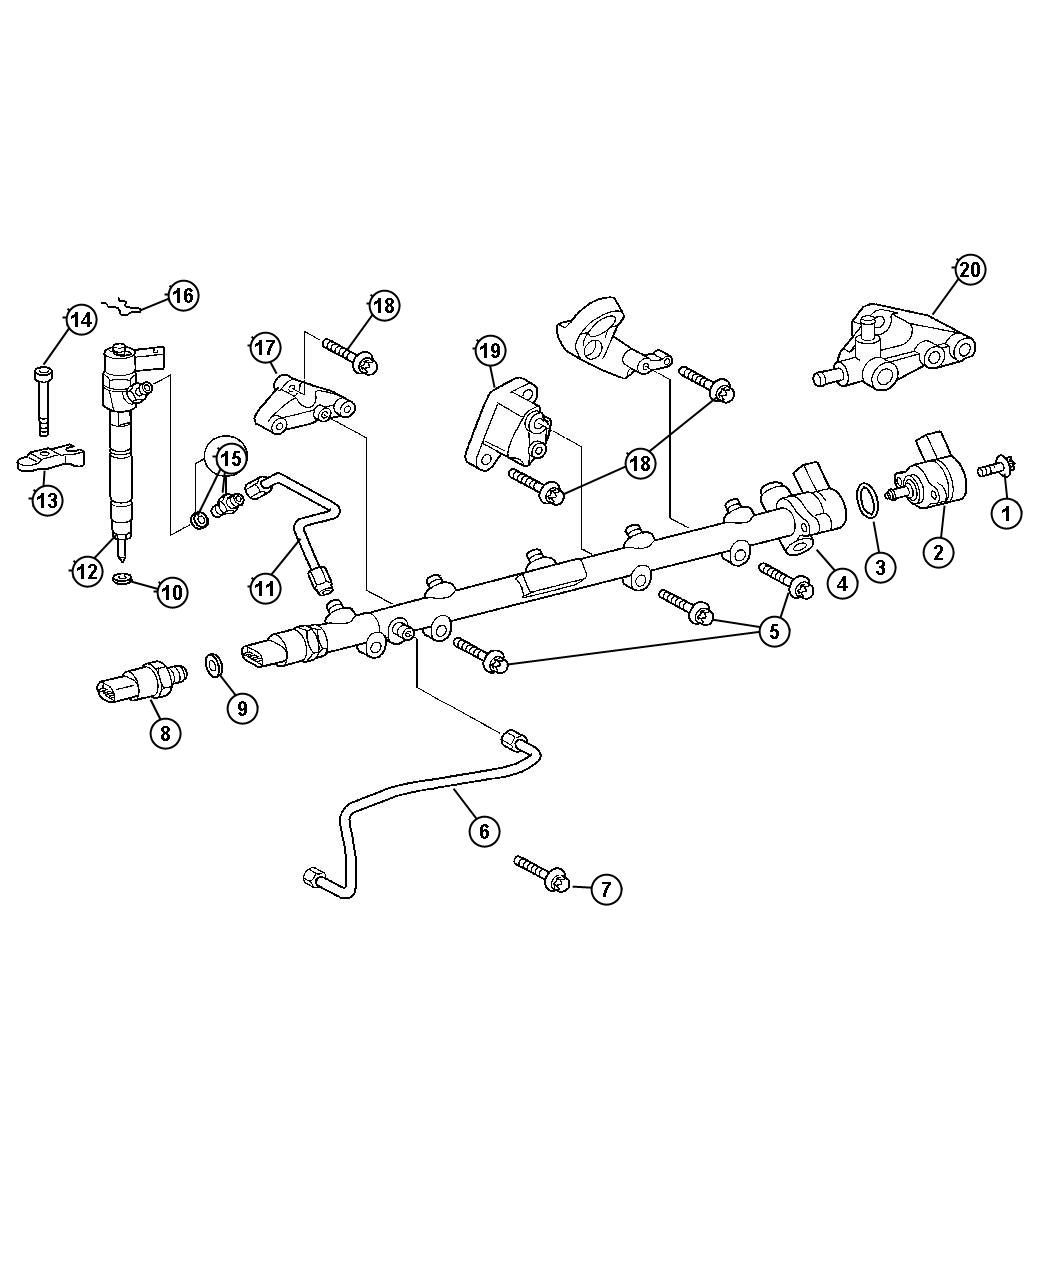 P 0900c152800a987f furthermore Wire Bracket further Search groups further Ratchet Spanners 330001 furthermore Leaf Blower Wiring Diagram. on spark plug hooks